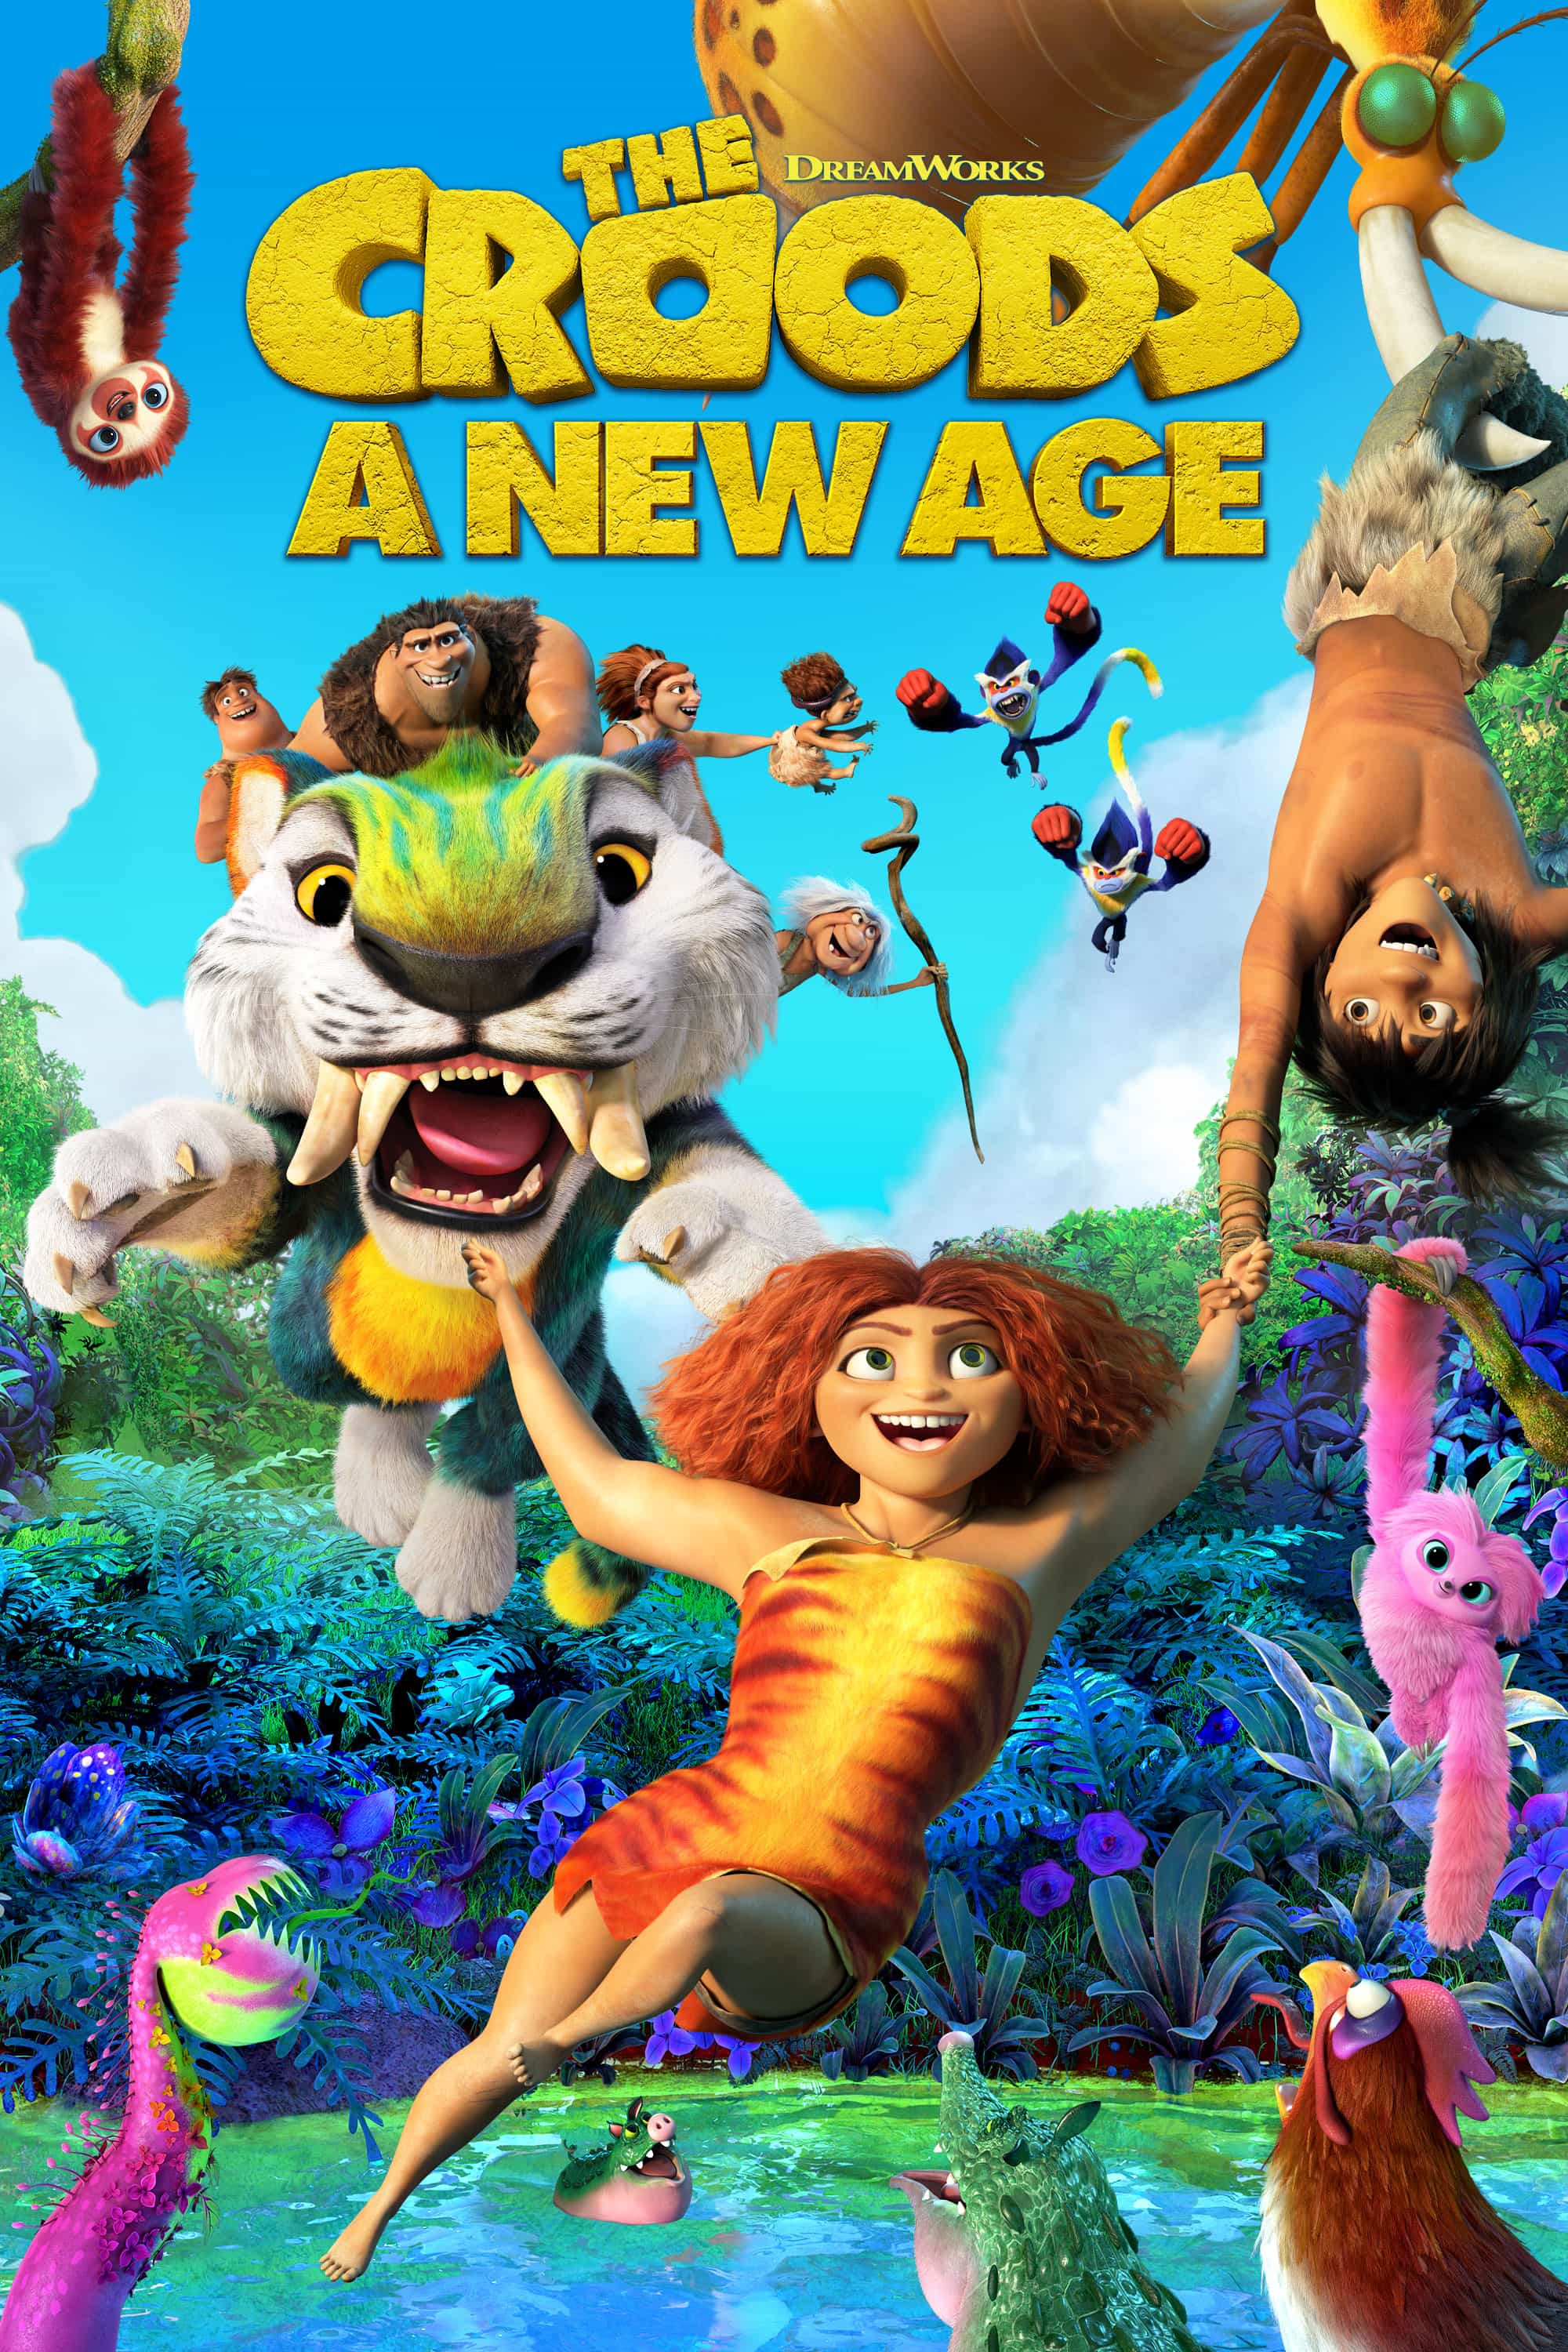 New poster release for The Croods A New Age starring Nicolas Cage - movie release date 29th January 2021